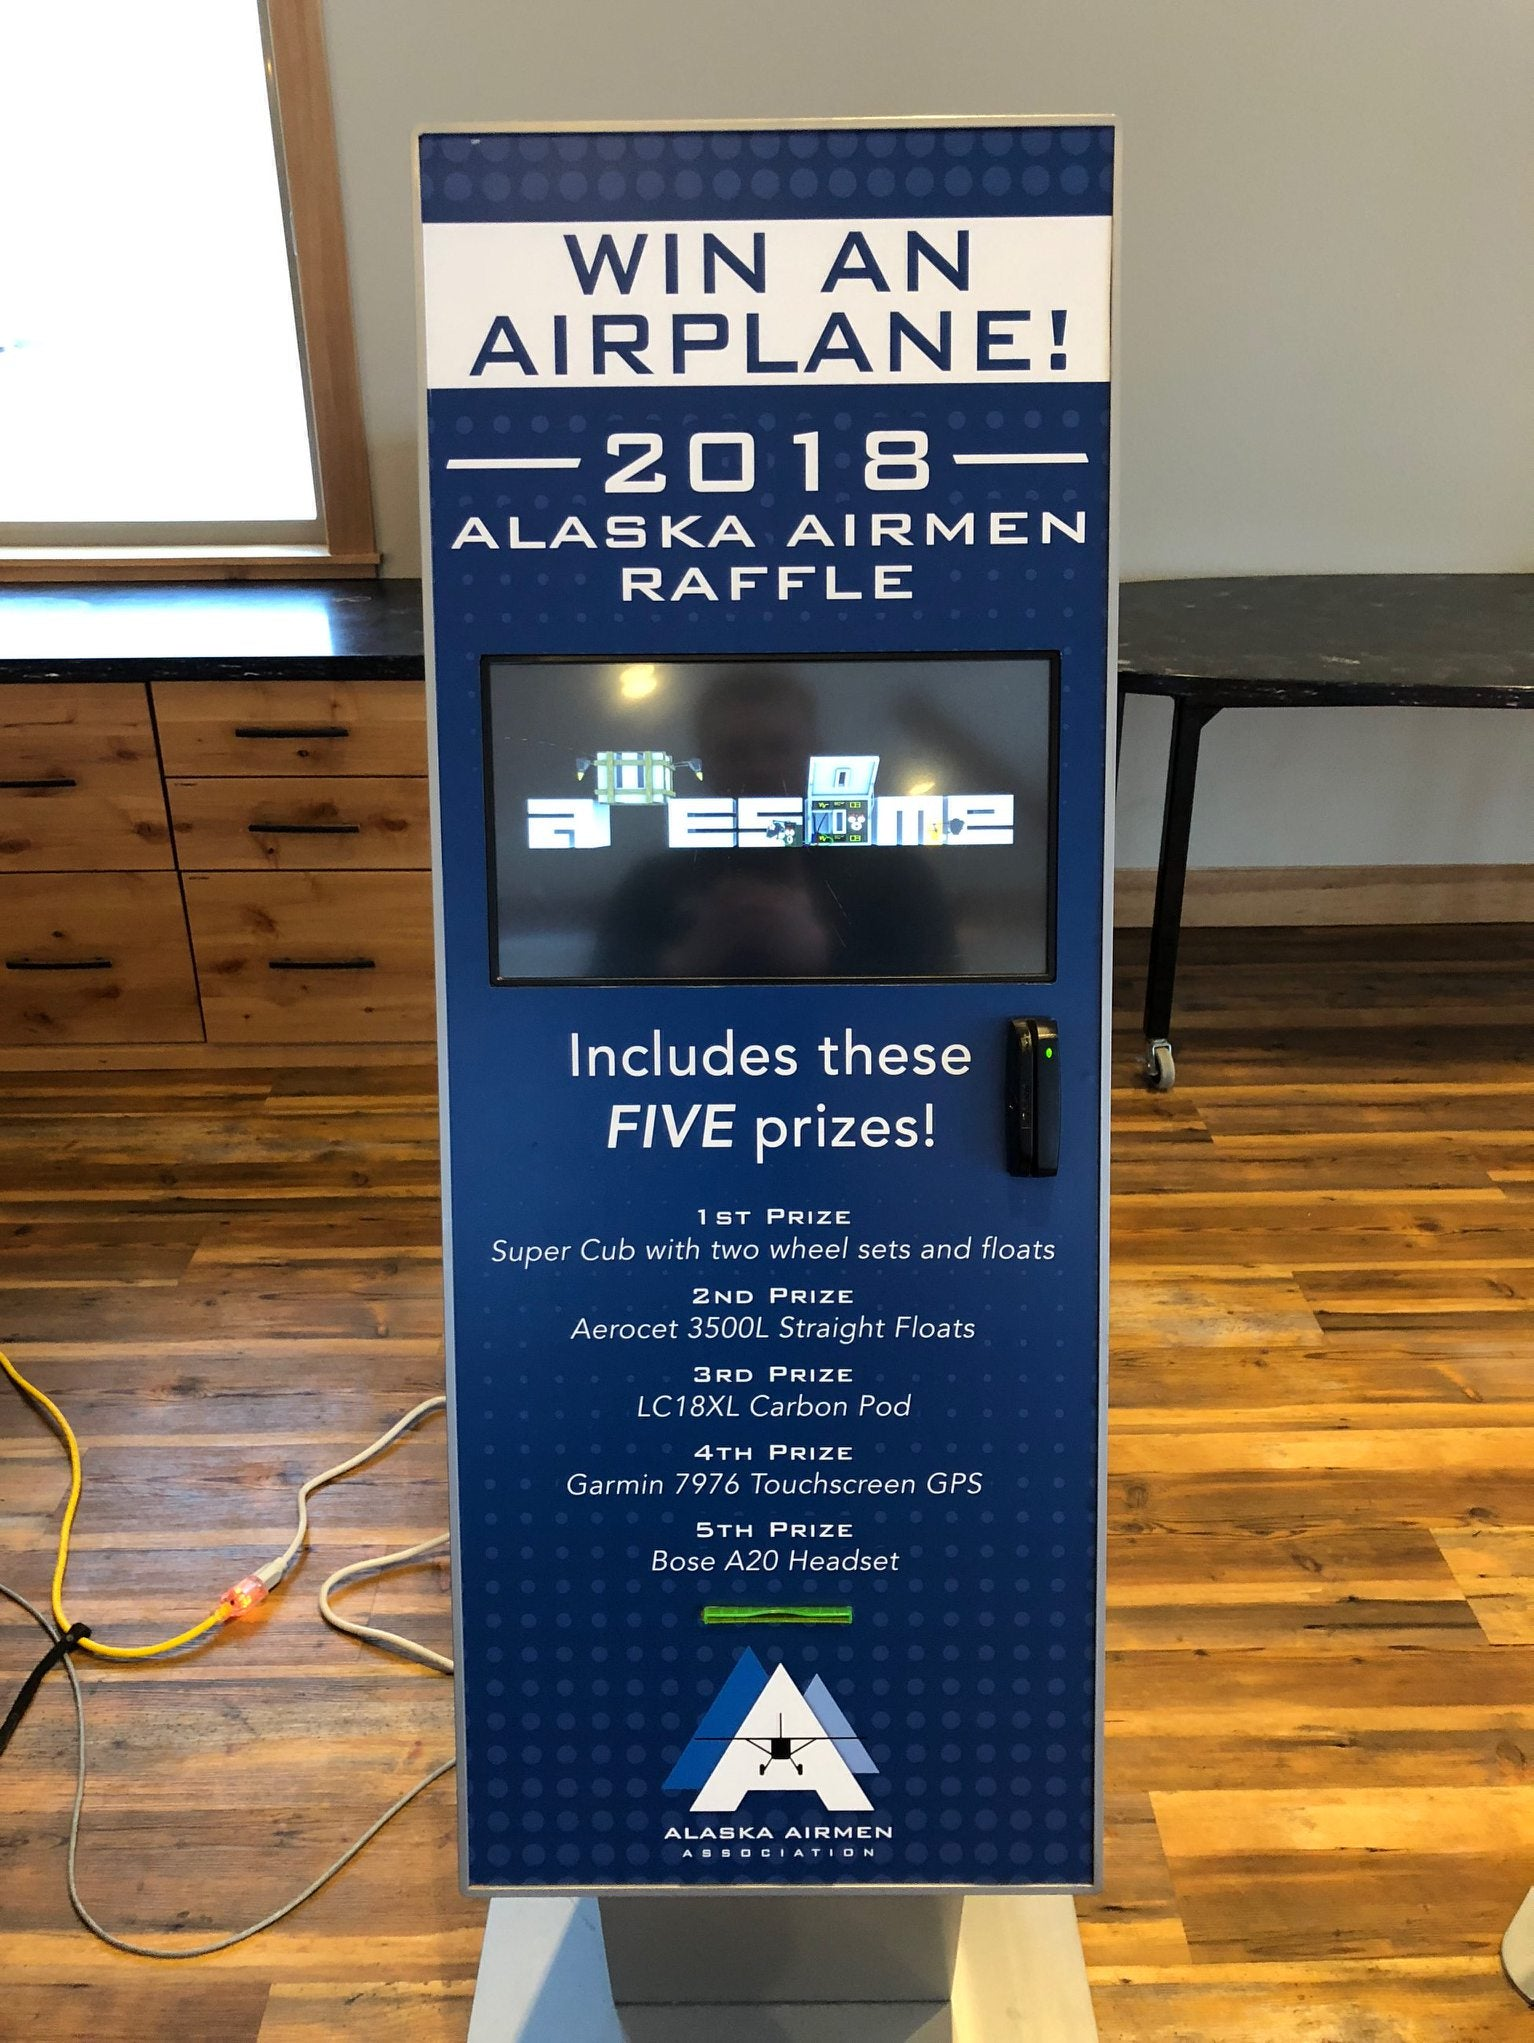 Alaska Community Partners works with the Alaska Airmen's Association in Anchorage, Alaska to sell raffle tickets via kiosk machine